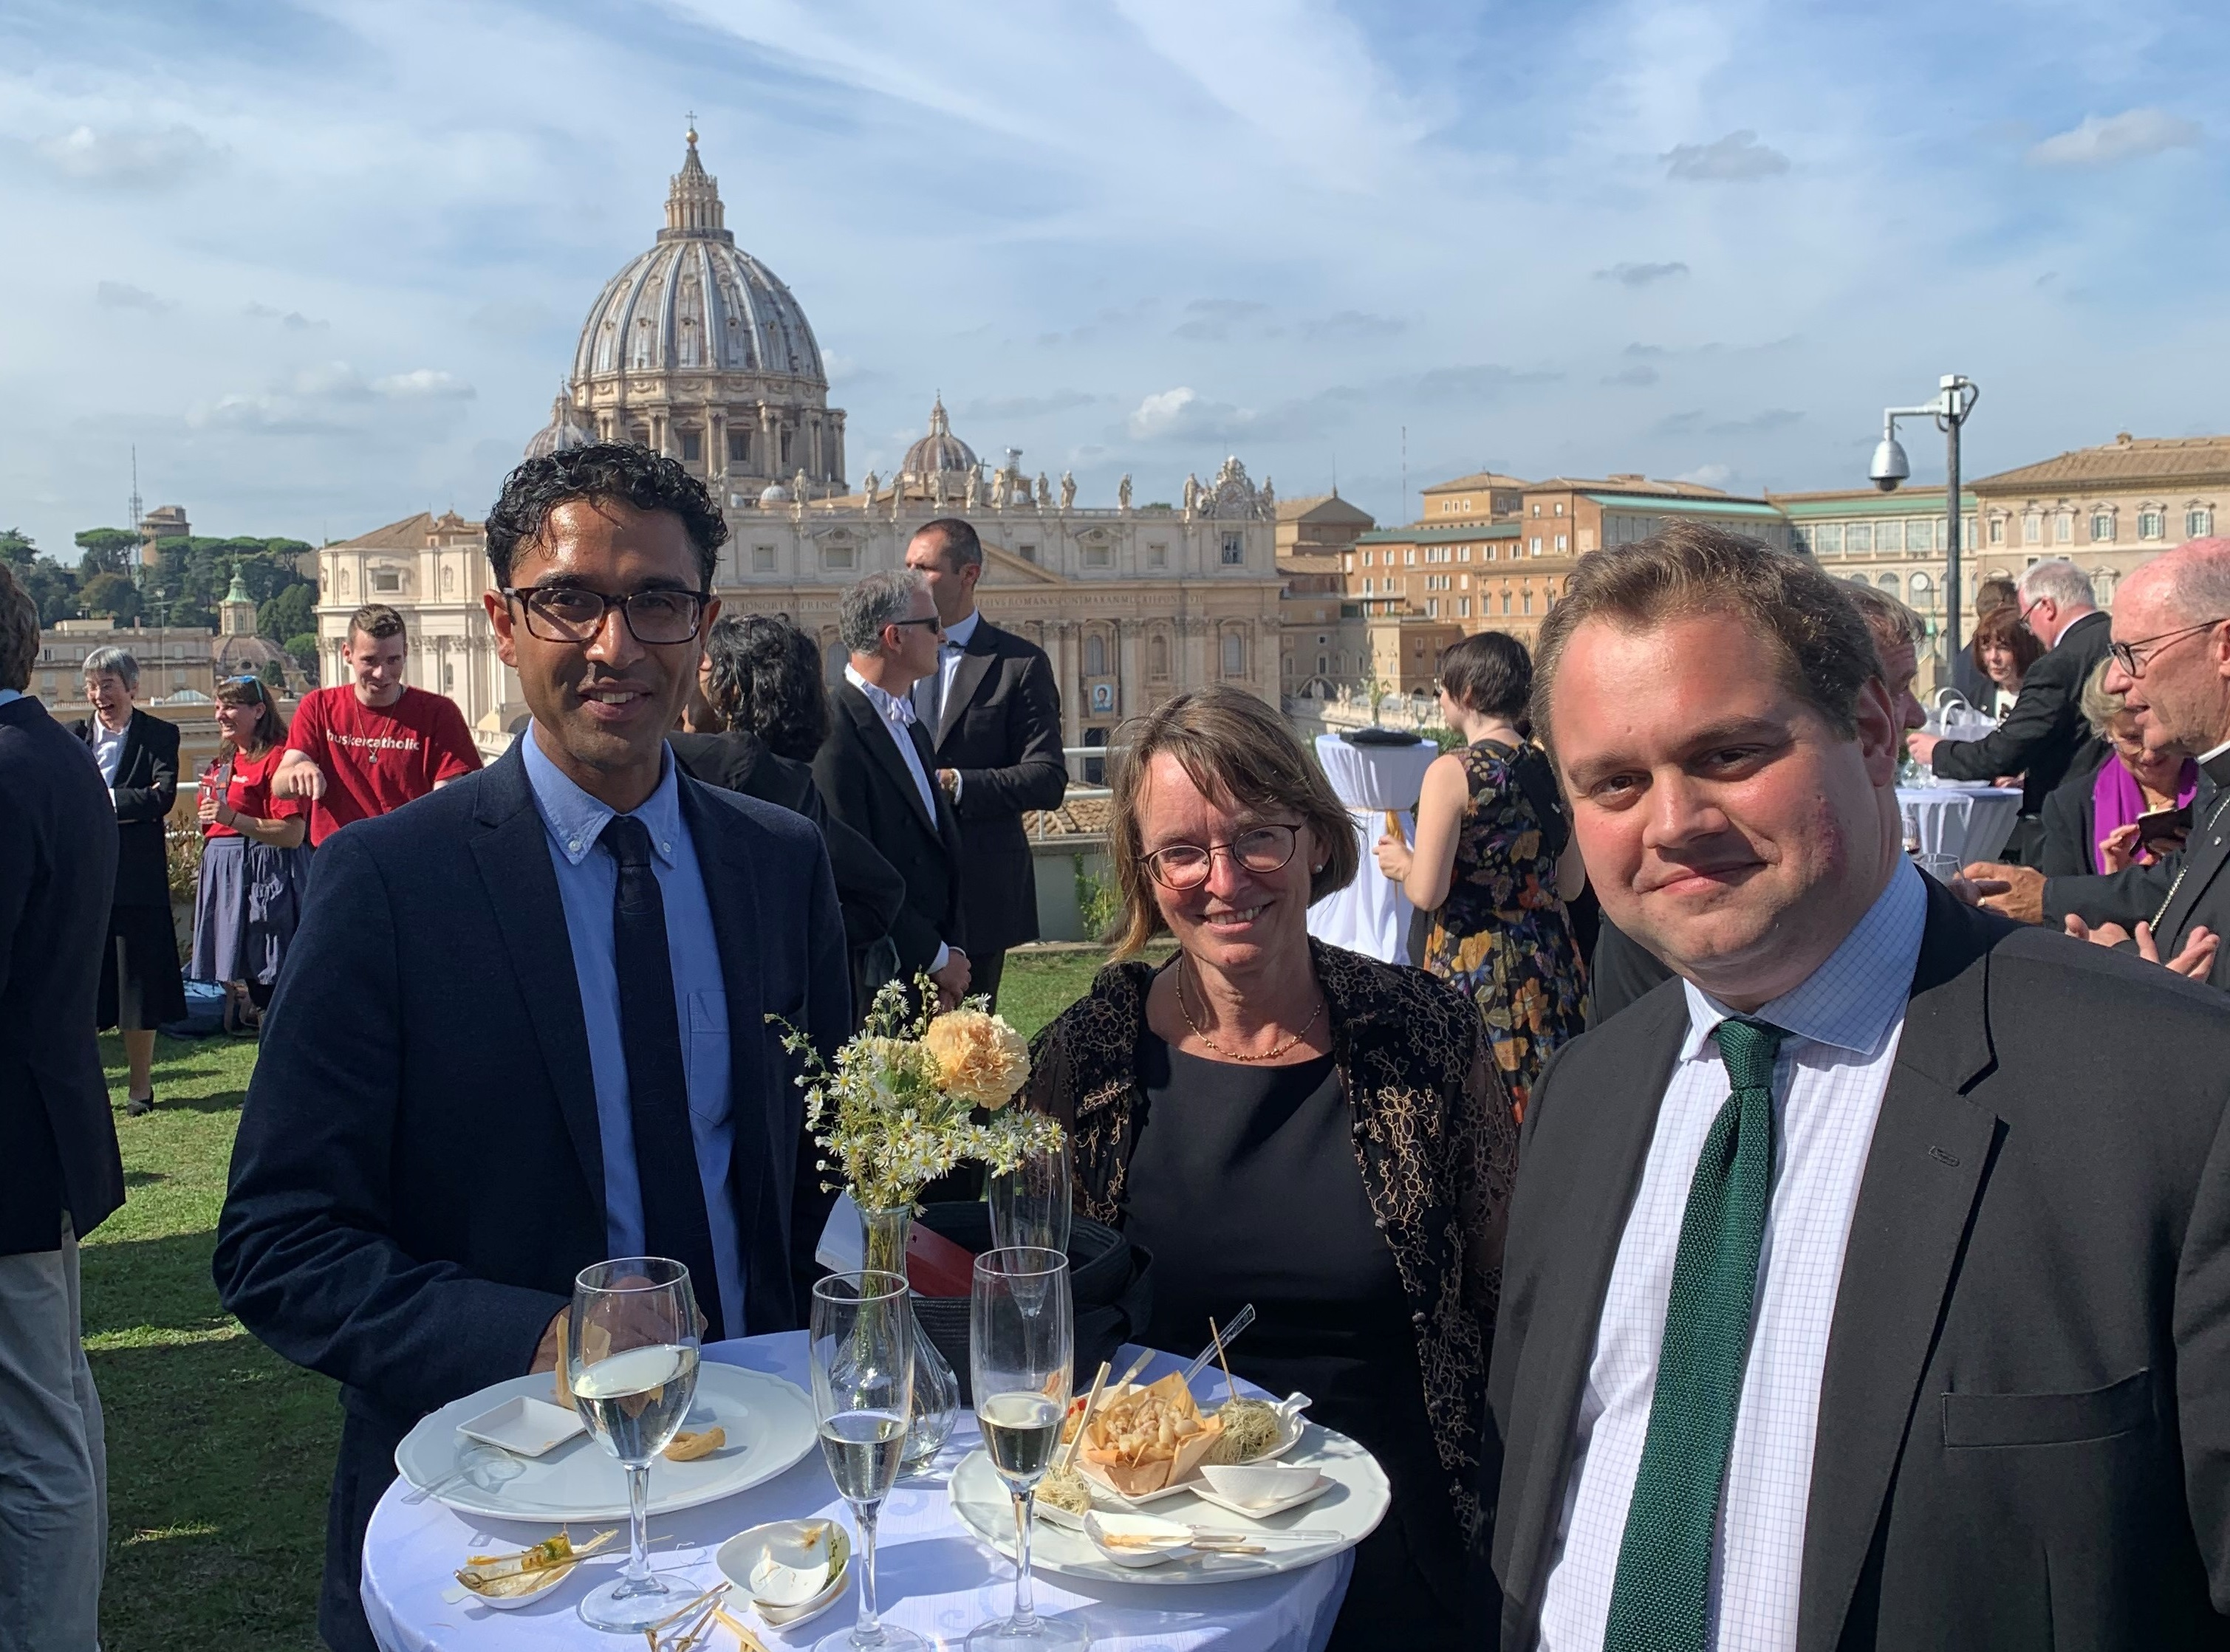 Trinity College Philosophy Fellow Anil Gomes, President Hilary Boulding, and Junior Research Fellow Tristan Franklinos at the canonisation ceremony in Rome for Cardinal Newman.